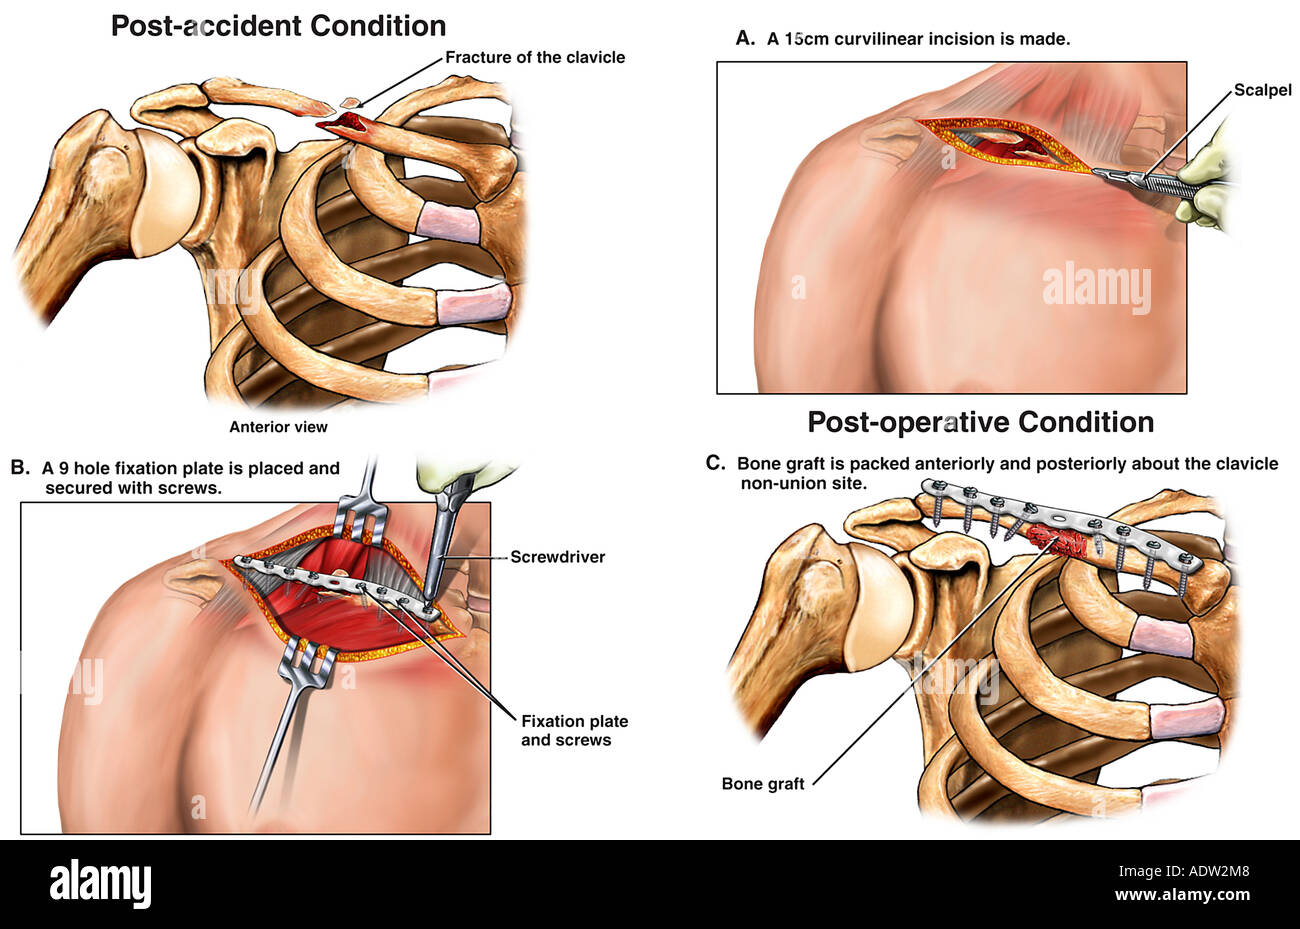 Right Clavicle Fracture with Surgical Fixation - Stock Image